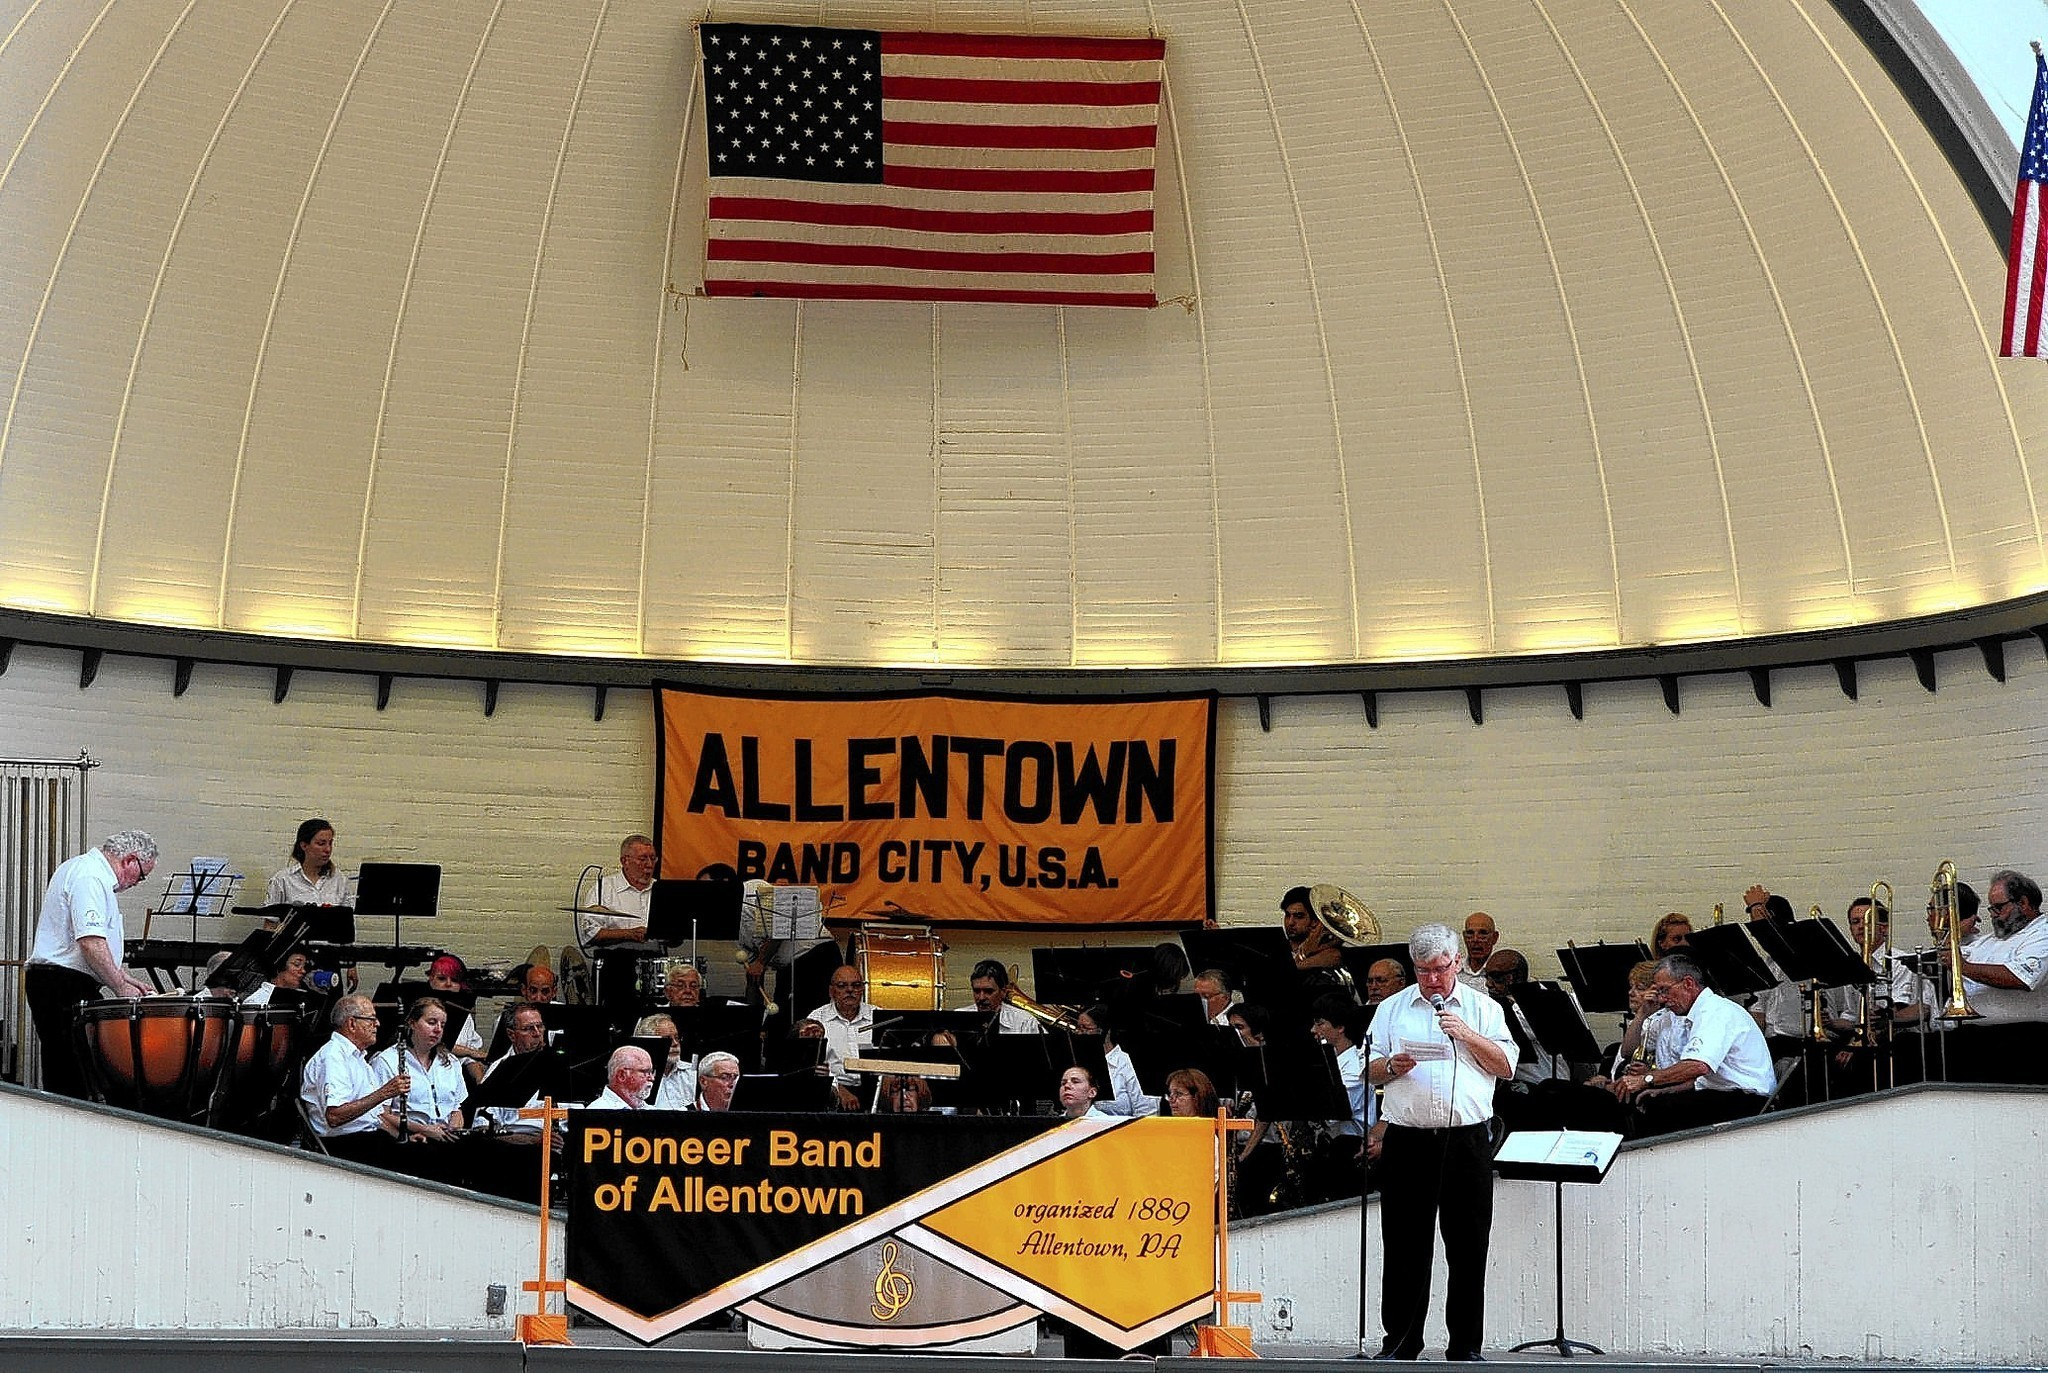 Lehigh Valley summer band concerts - The Morning Call